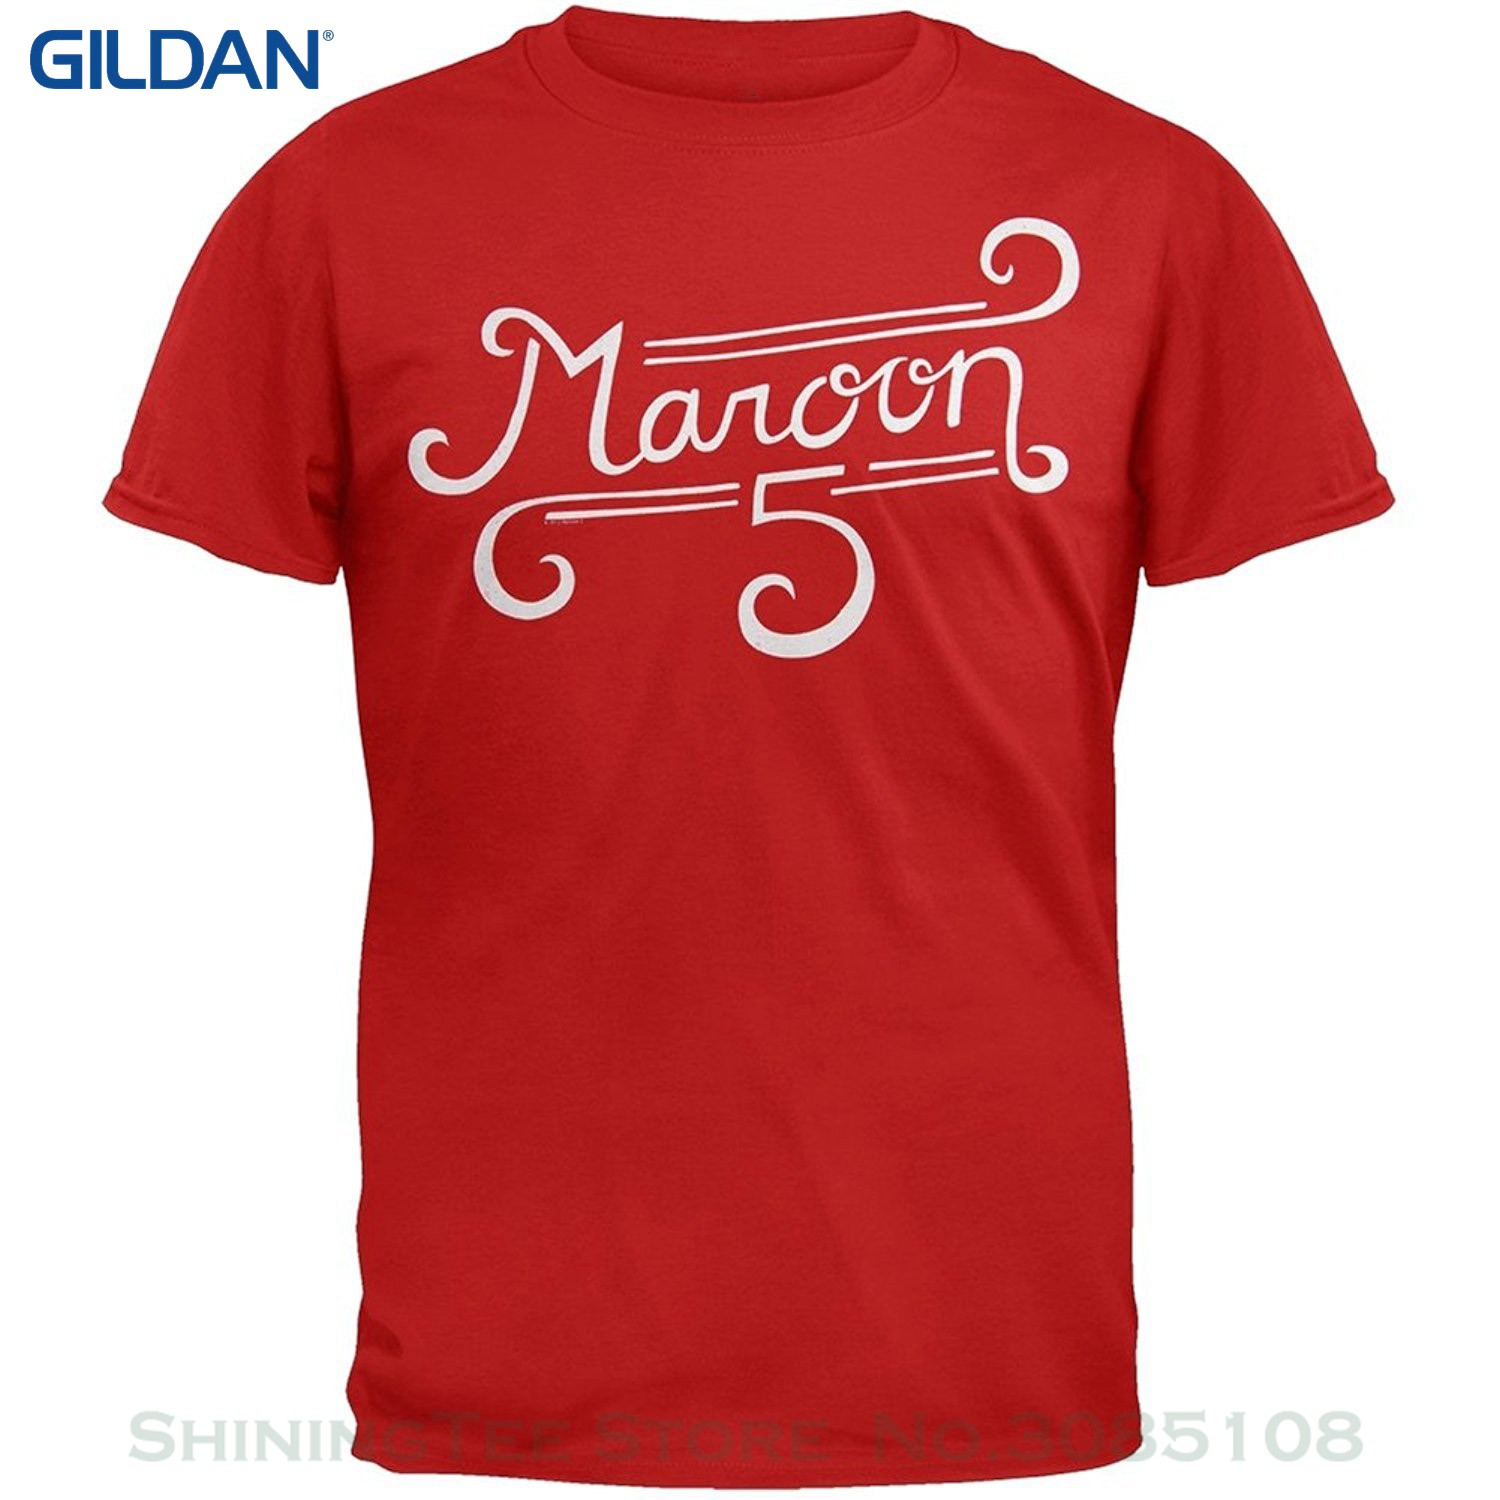 GILDAN New Arrival Male Tees Casual Boy T-shirt Tops Discounts Maroon 5 - Curl Logo Soft T-shirt